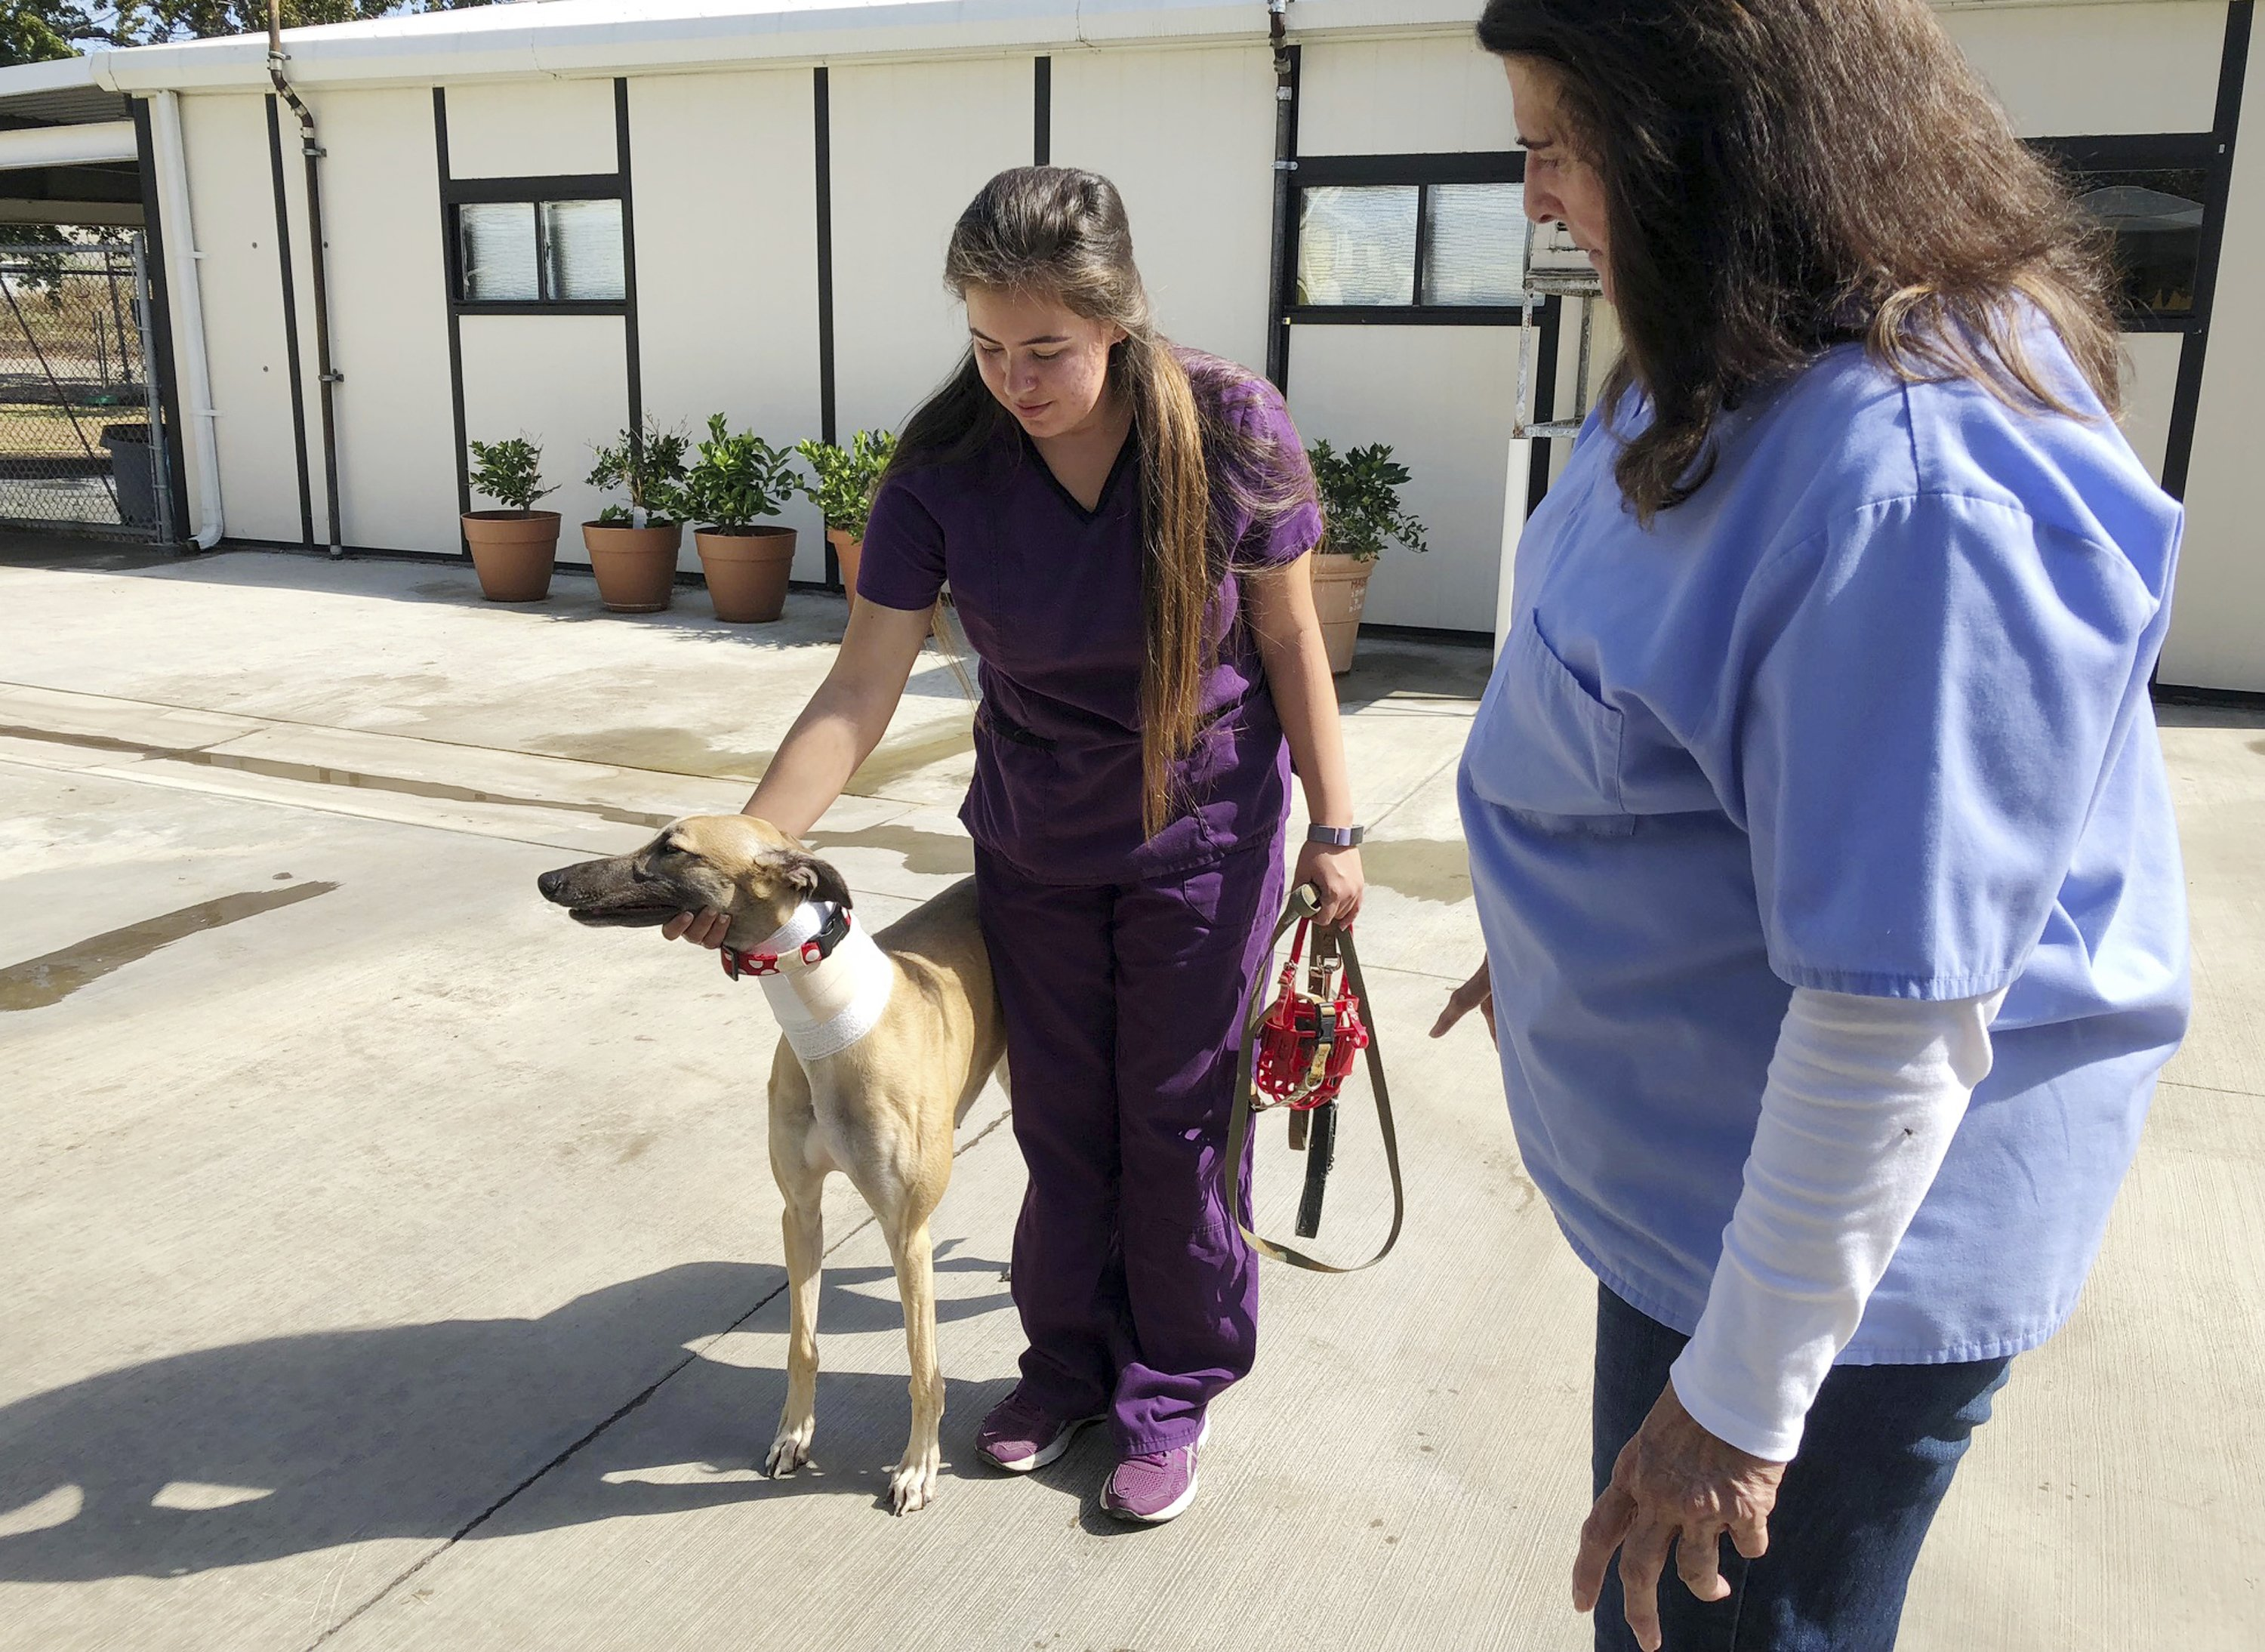 California canine blood bank disputes PETA abuse claims - Associated Press (press release) (blog) 1